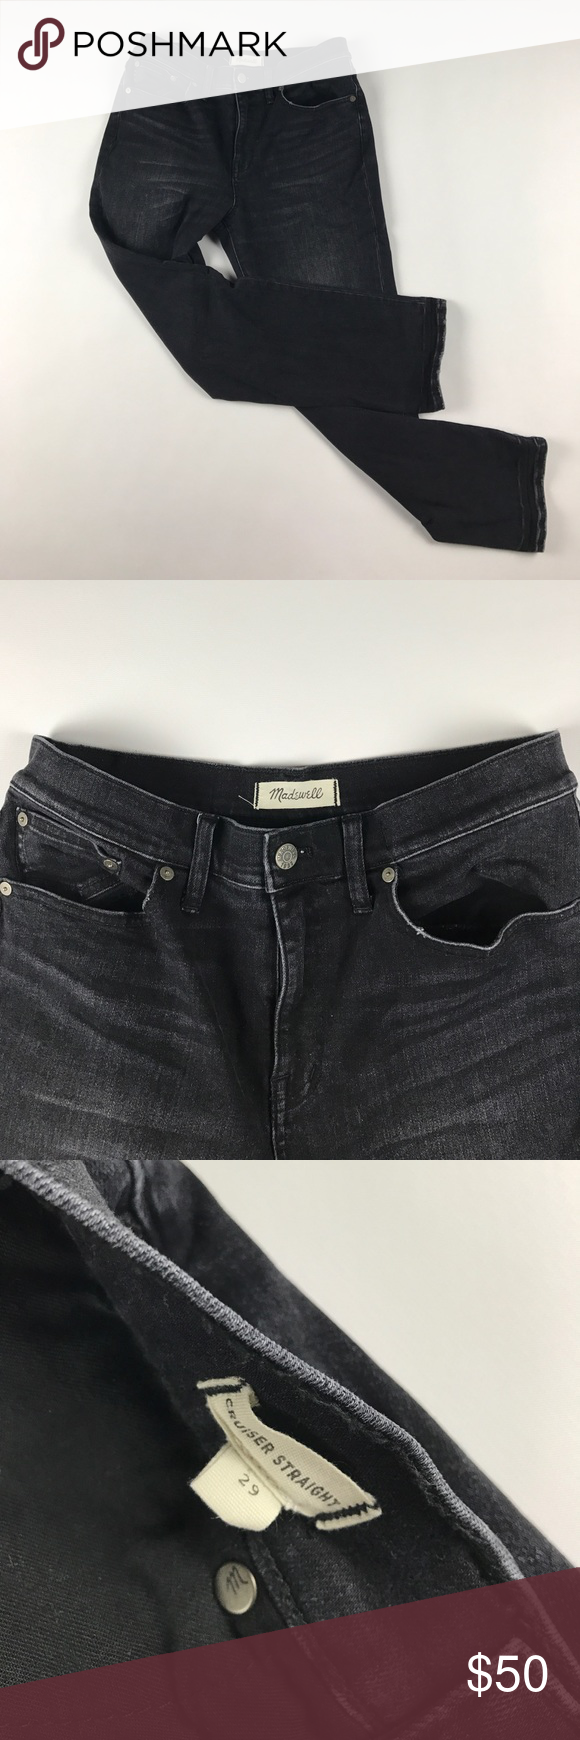 Size 29 Madewell Super Cruiser Denim Jeans Black 27 inch inseam Madewell Jeans Straight Leg